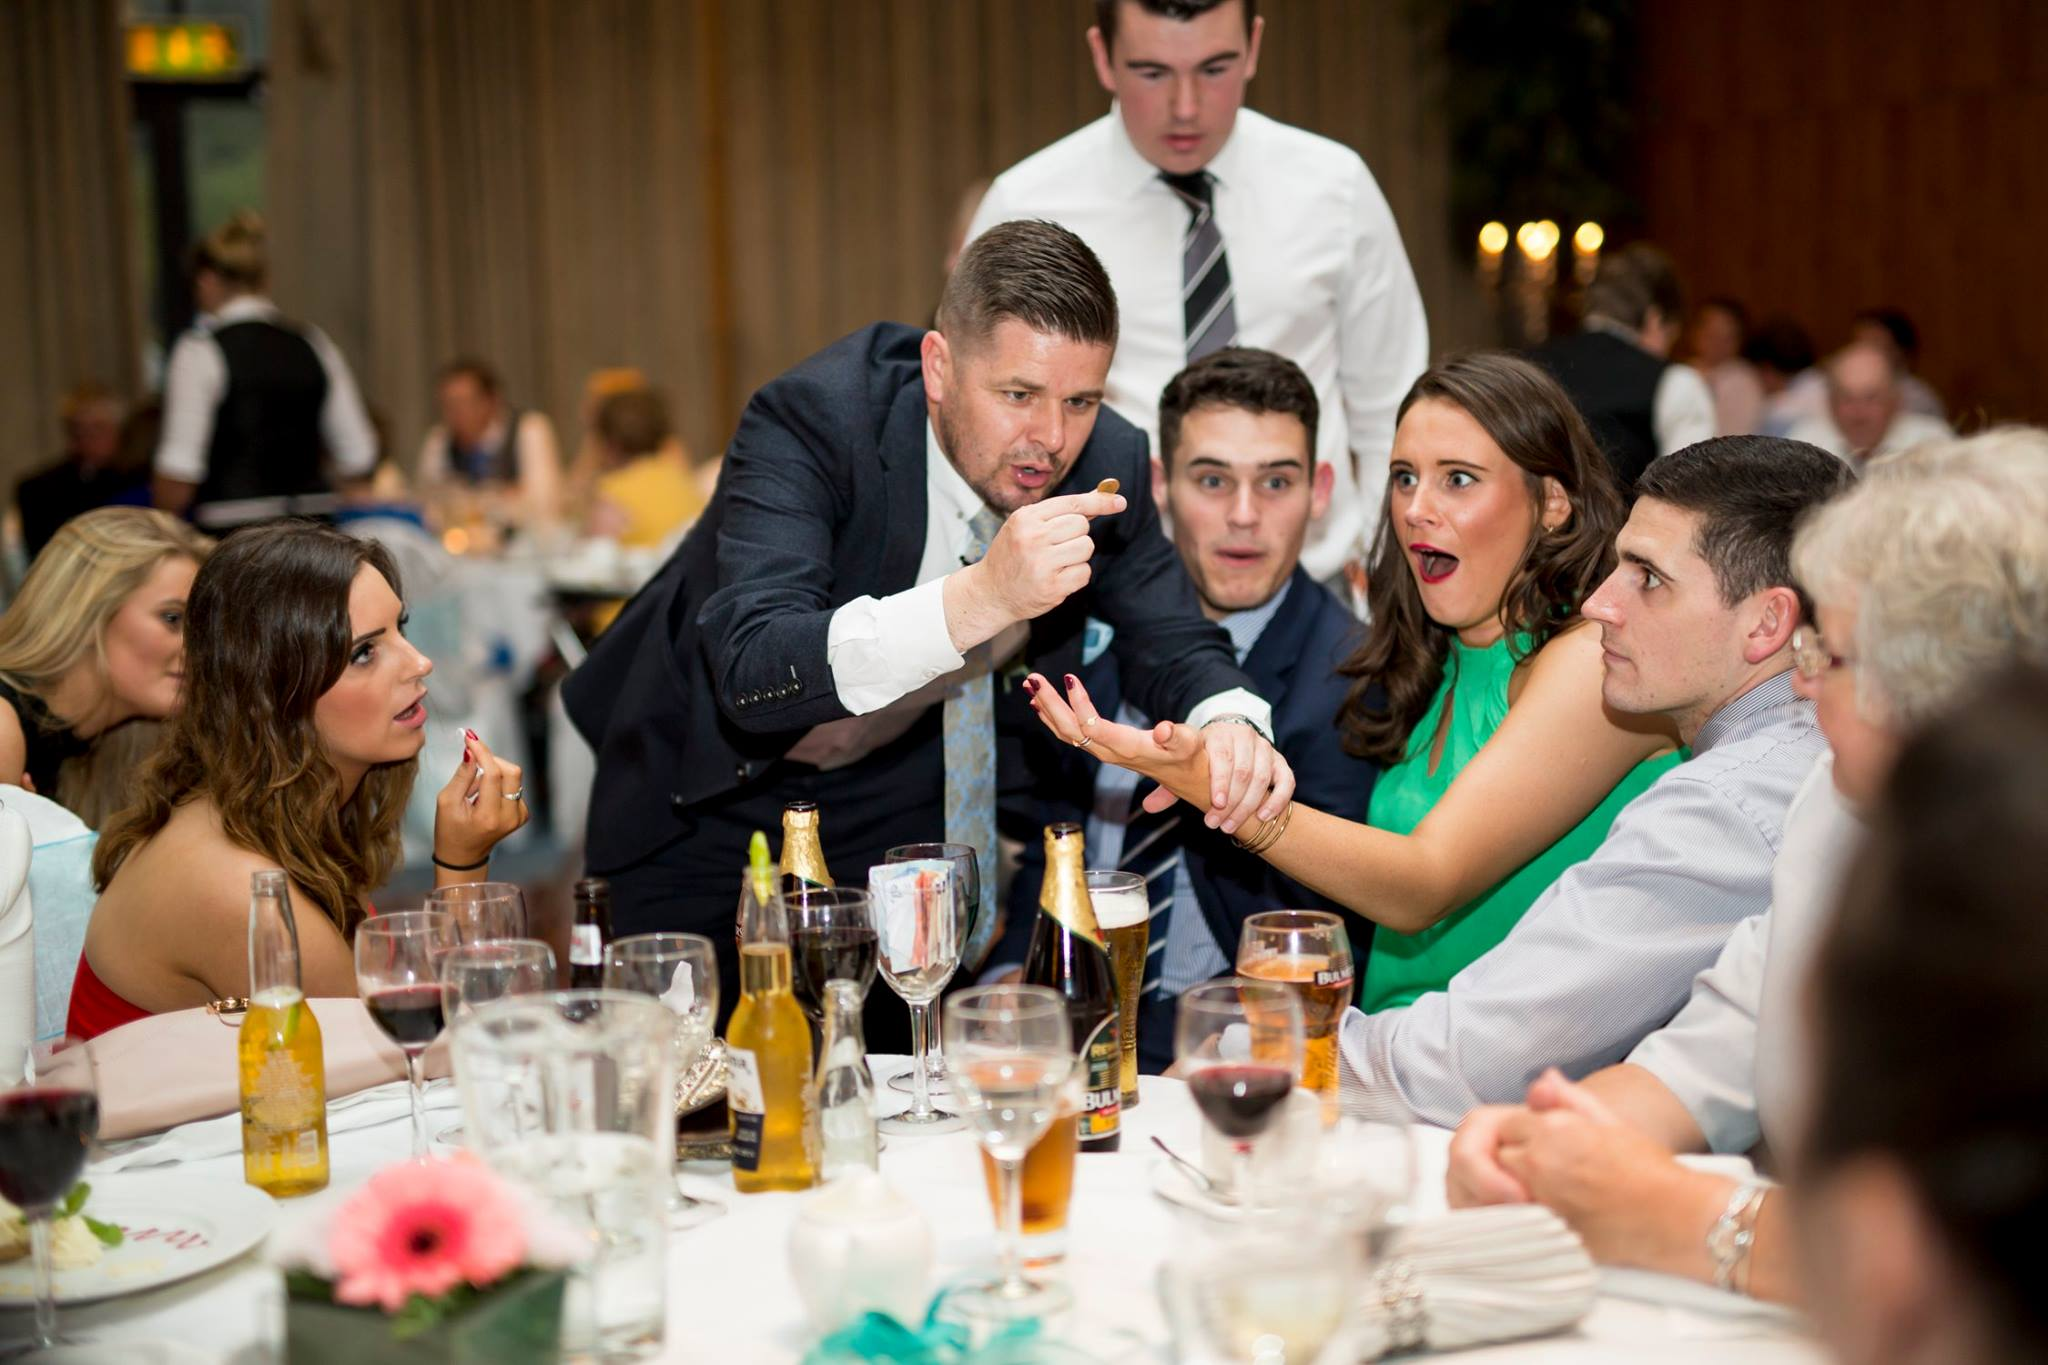 Wedding Entertainment and corporate entertainer